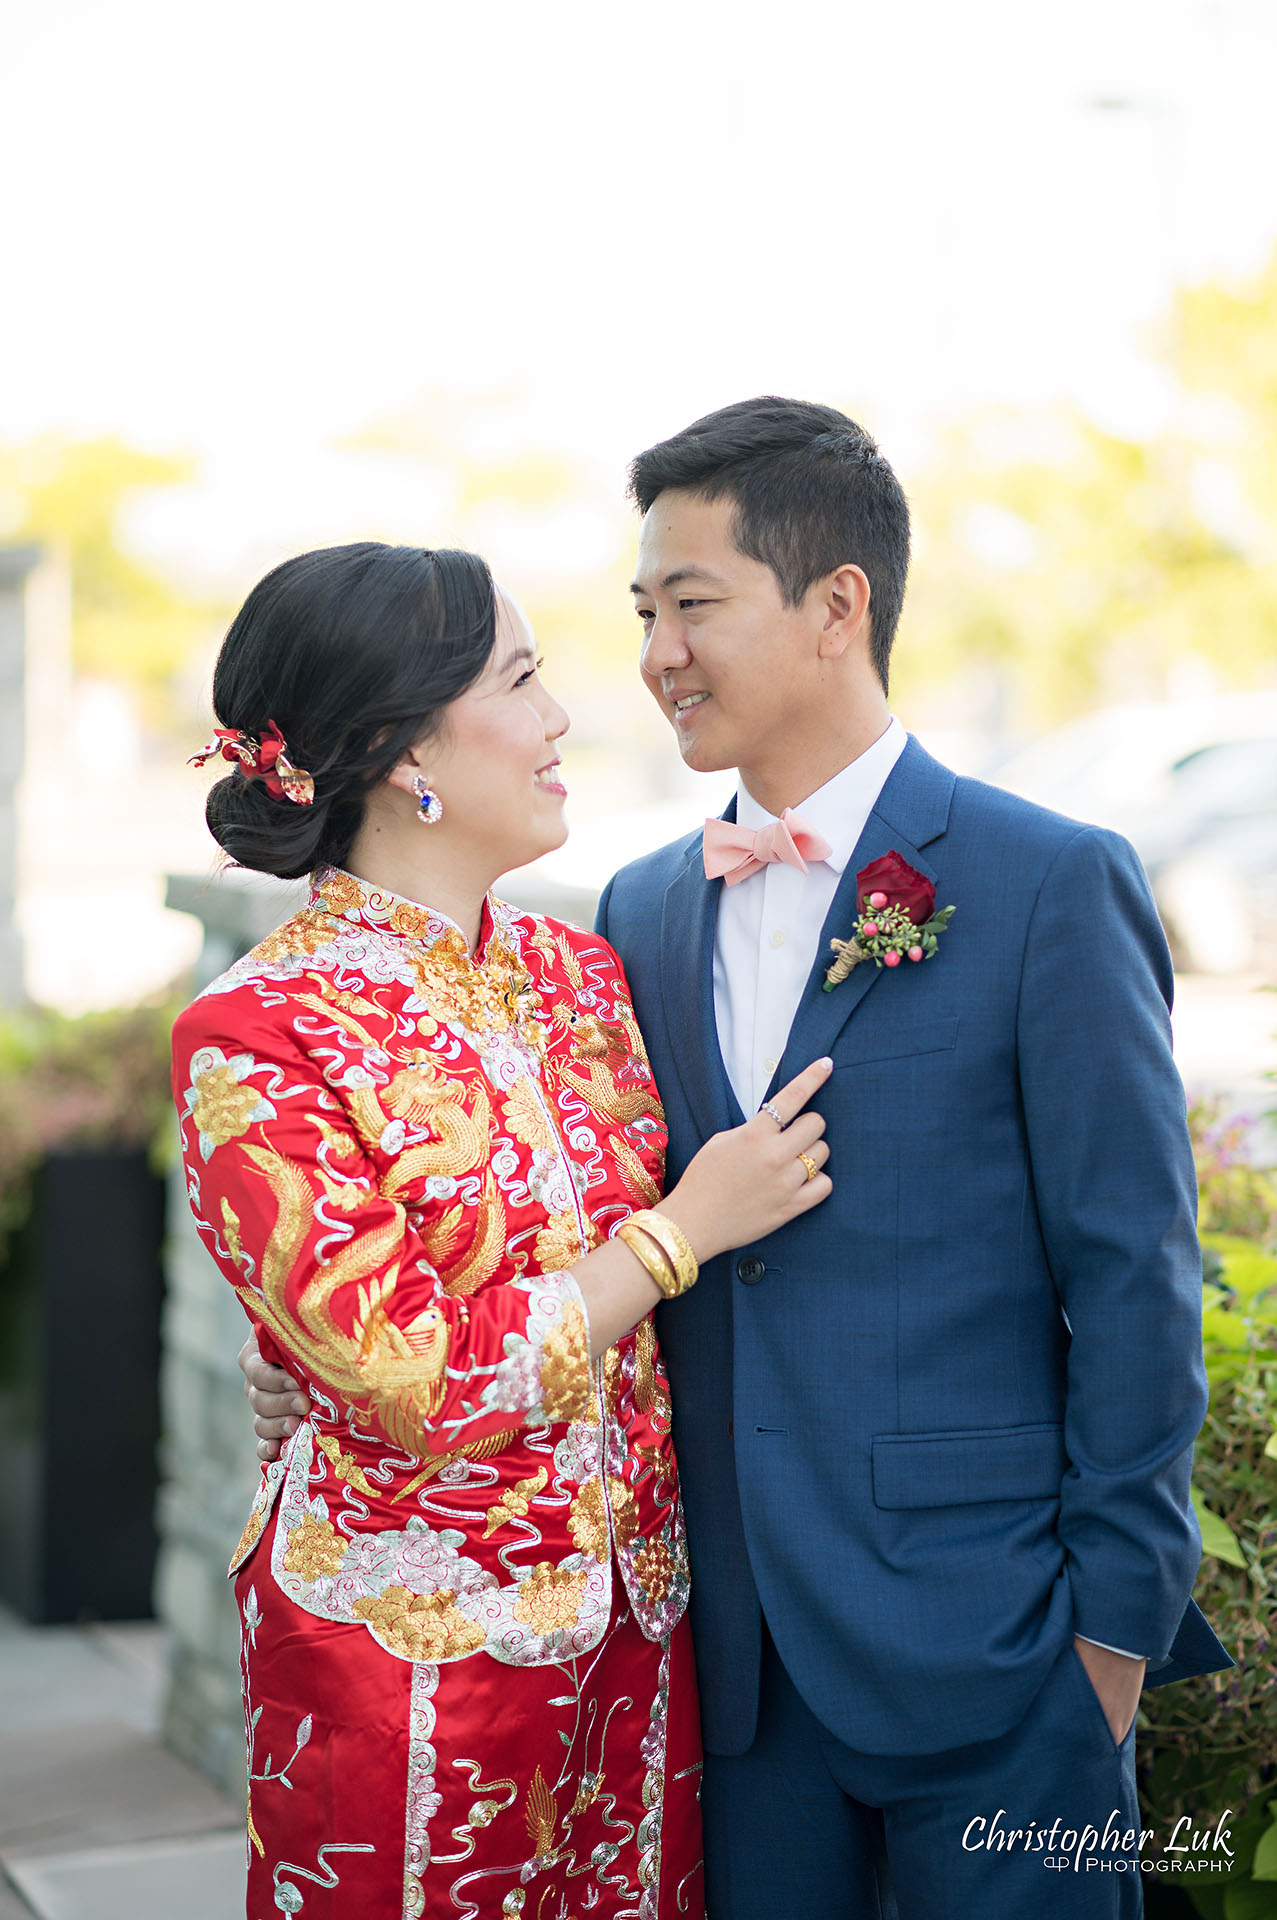 Christopher Luk Toronto Wedding Photographer Bridle Trail Baptist Church Unionville Main Street Crystal Fountain Event Venue Bride Groom Natural Photojournalistic Candid Chinese Tea Ceremony Cheongsam Qipao Kua Qua Gold Jewelry Jewellery Necklace Bracelet Rings Hug Smile